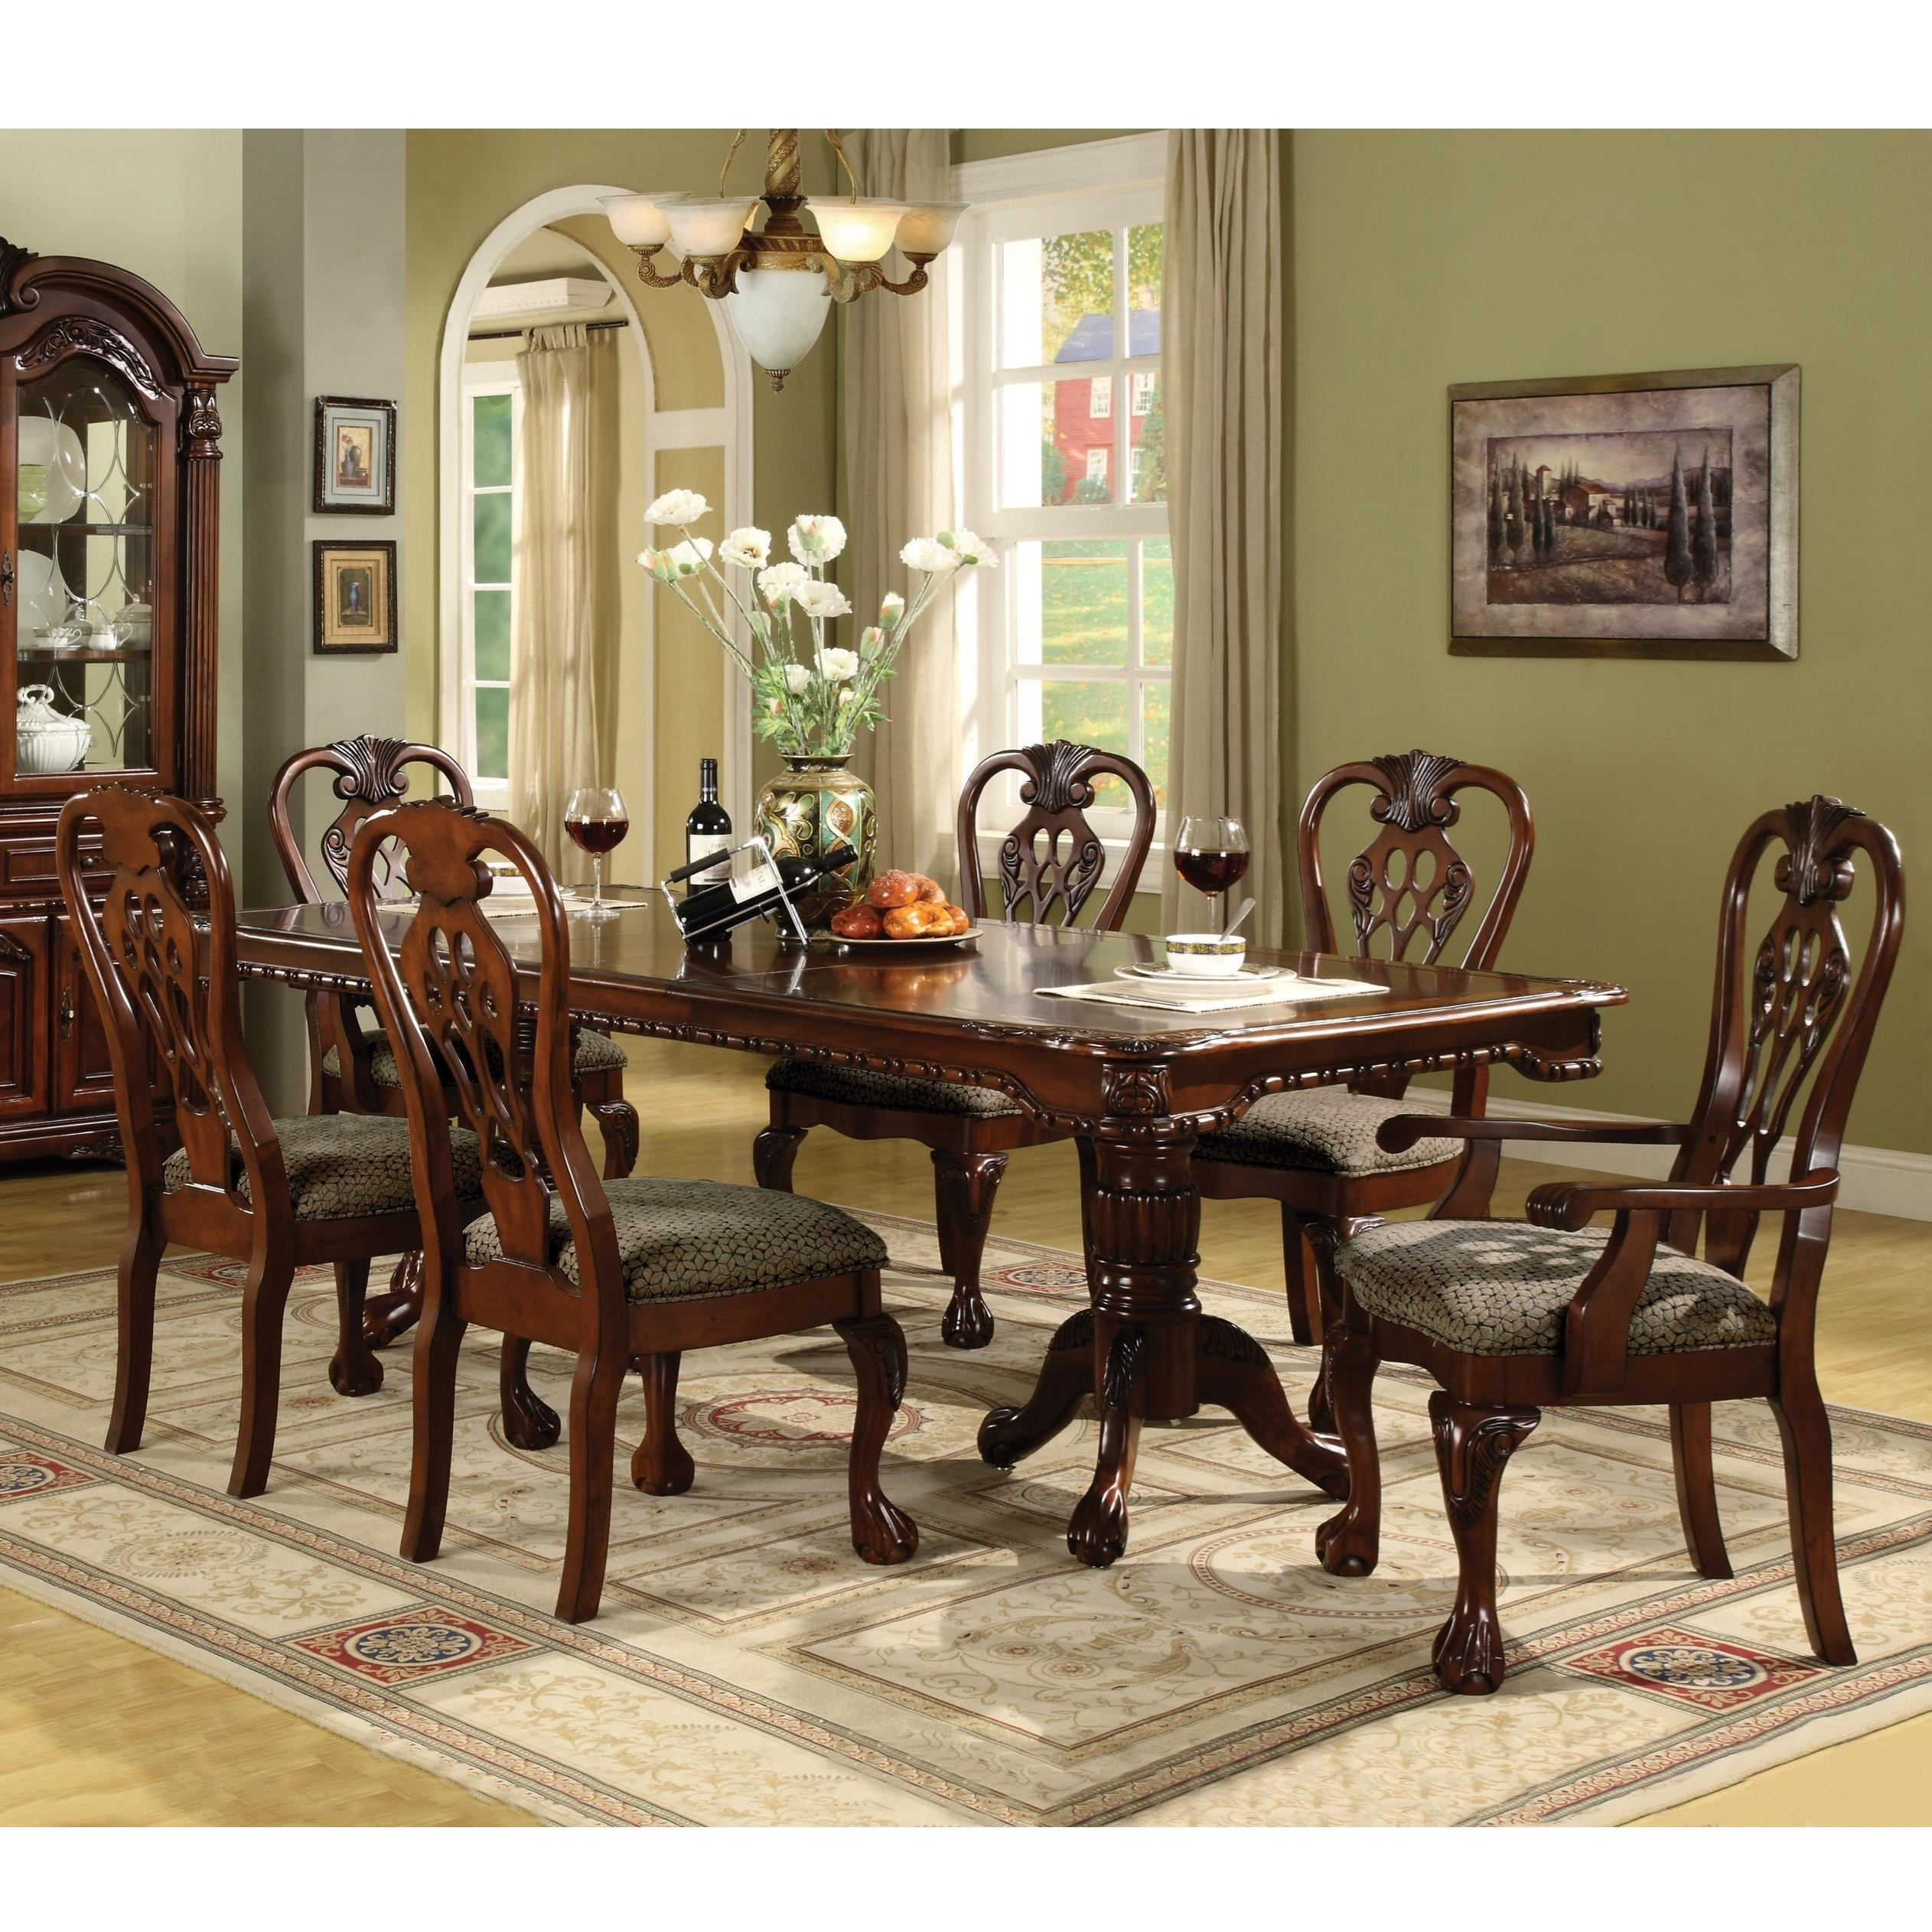 Best Place To Buy Dining Room Set: Crown Mark Brussels Double Pedestal Dining Table And